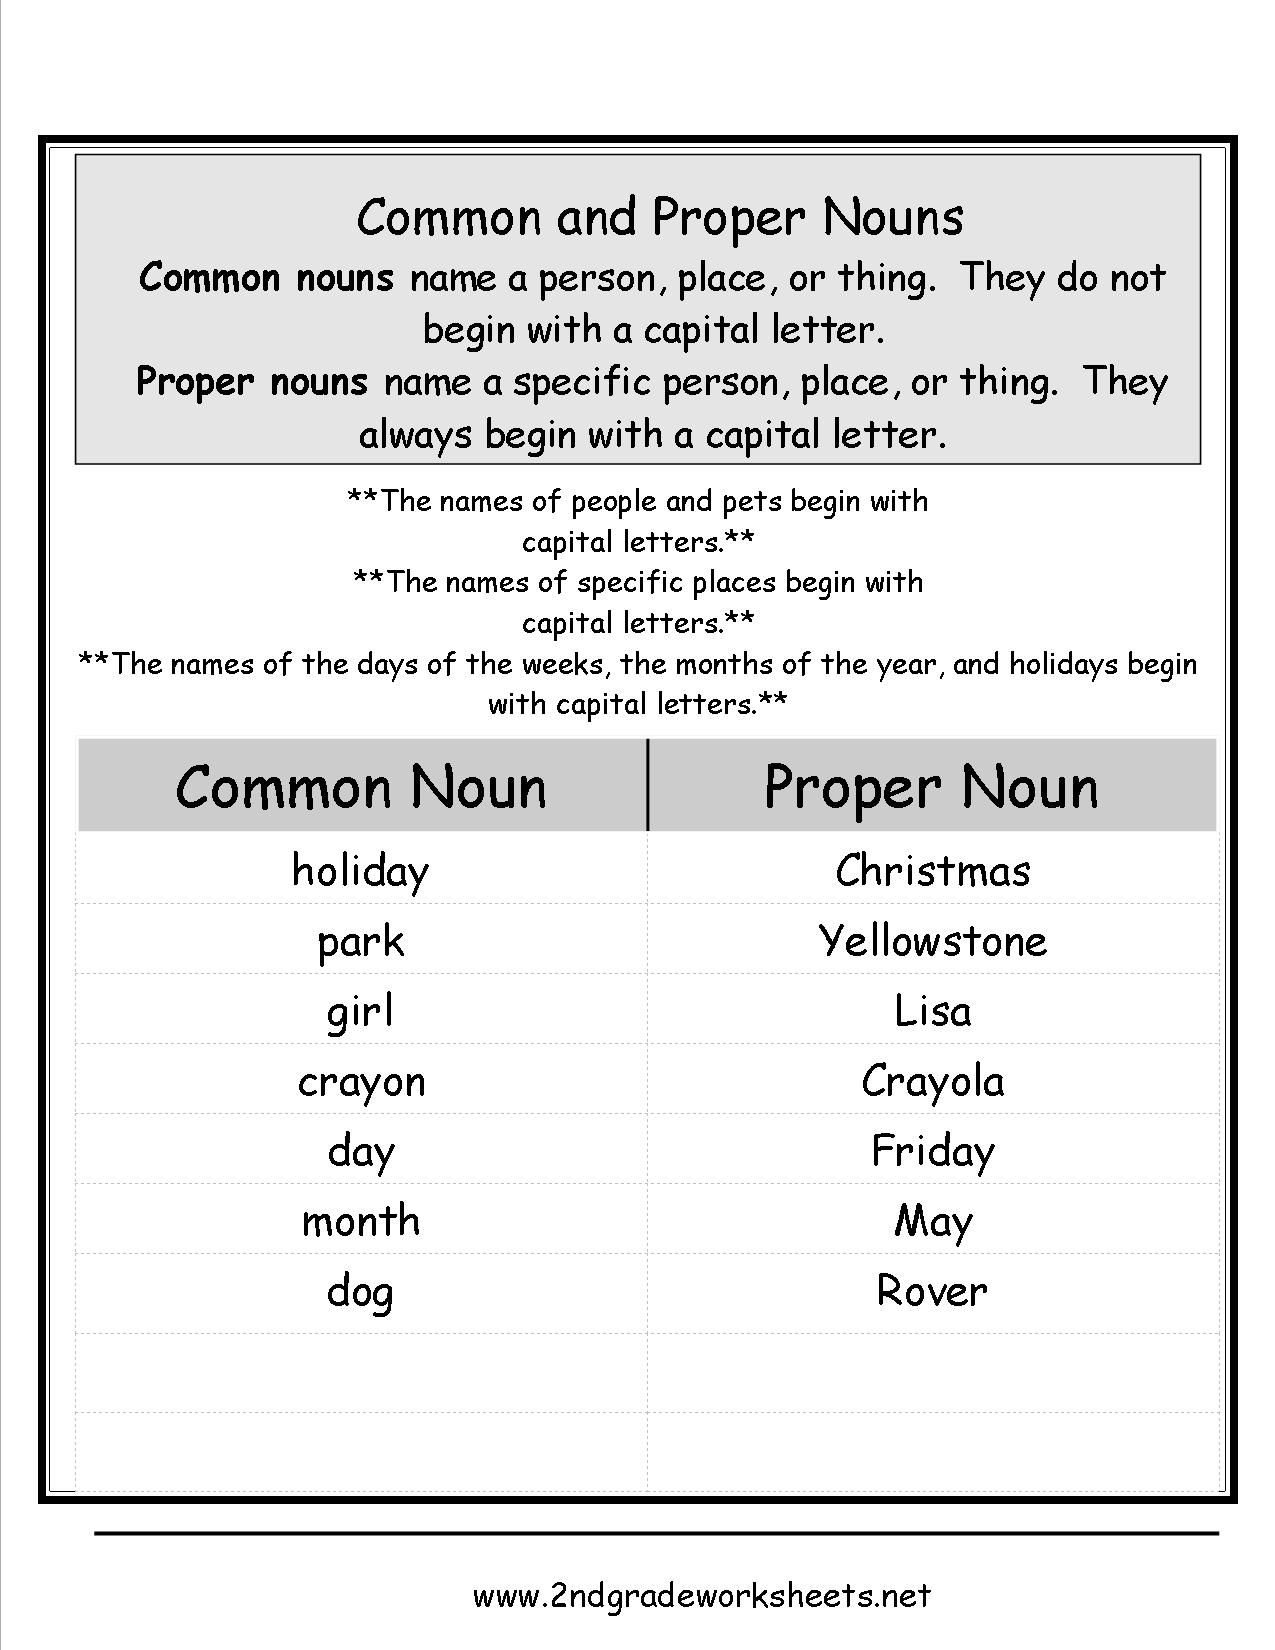 Proper Nouns Worksheet Nouns And Pronouns Common Nouns